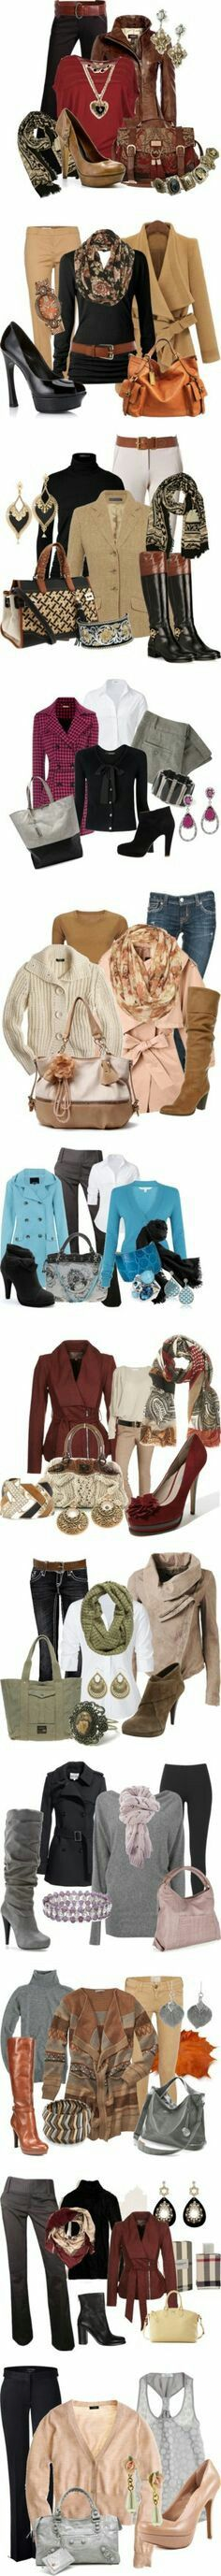 Find More at => http://feedproxy.google.com/~r/amazingoutfits/~3/Ey221hk1UdY/AmazingOutfits.page